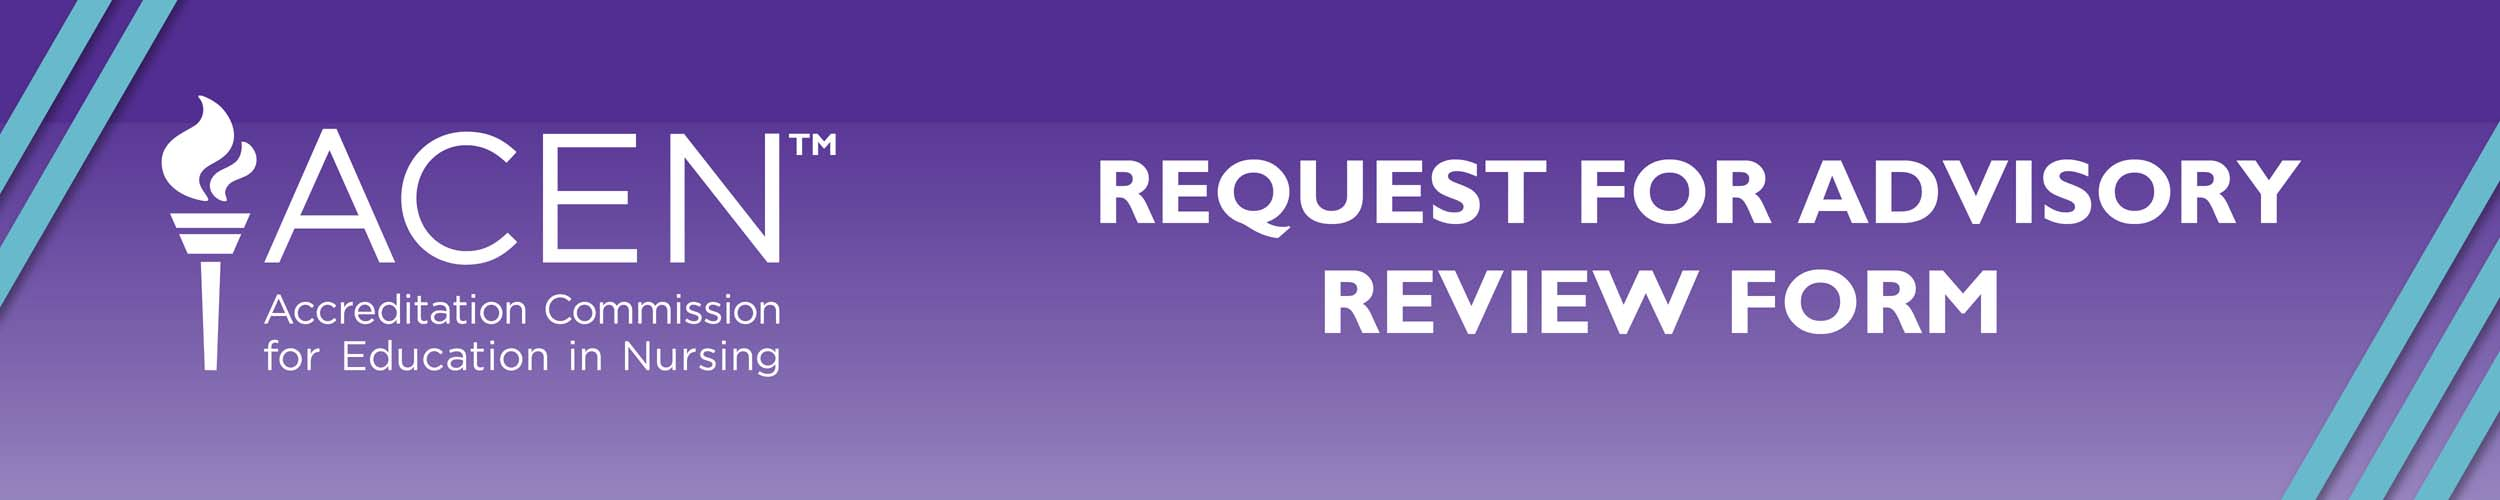 REQUEST FOR ADVISORY REVIEW FORM